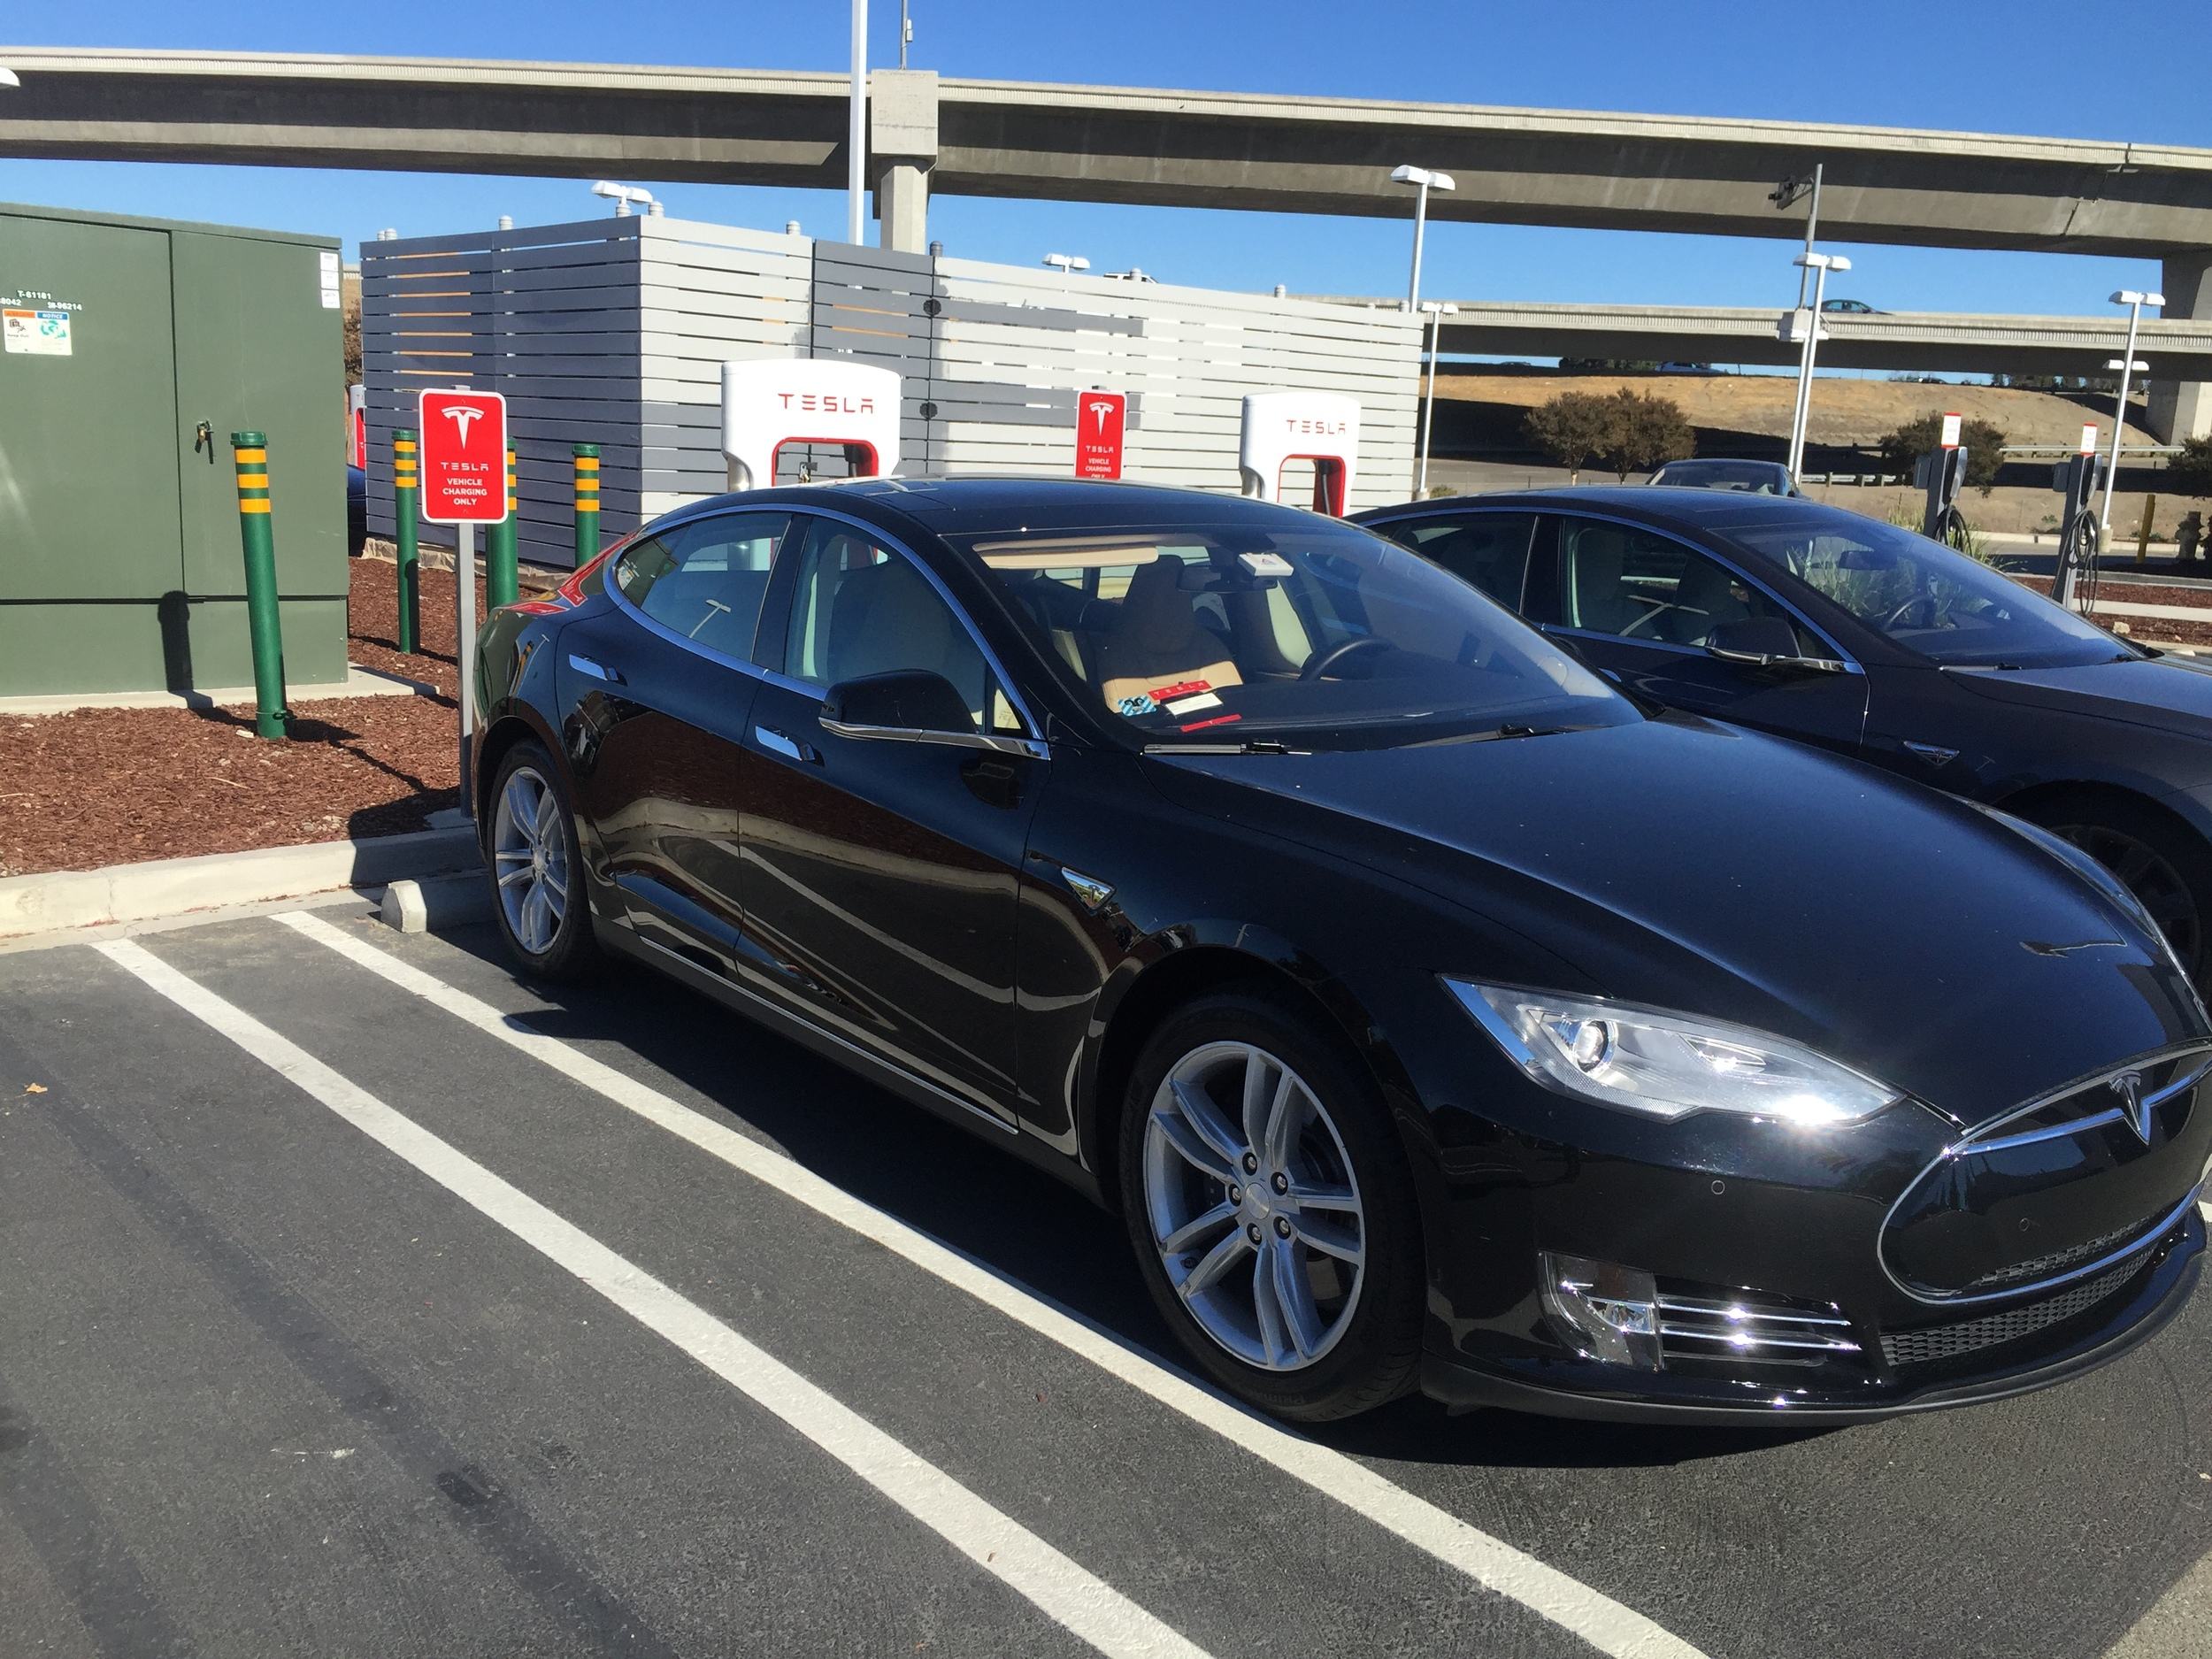 Supercharging at Dublin